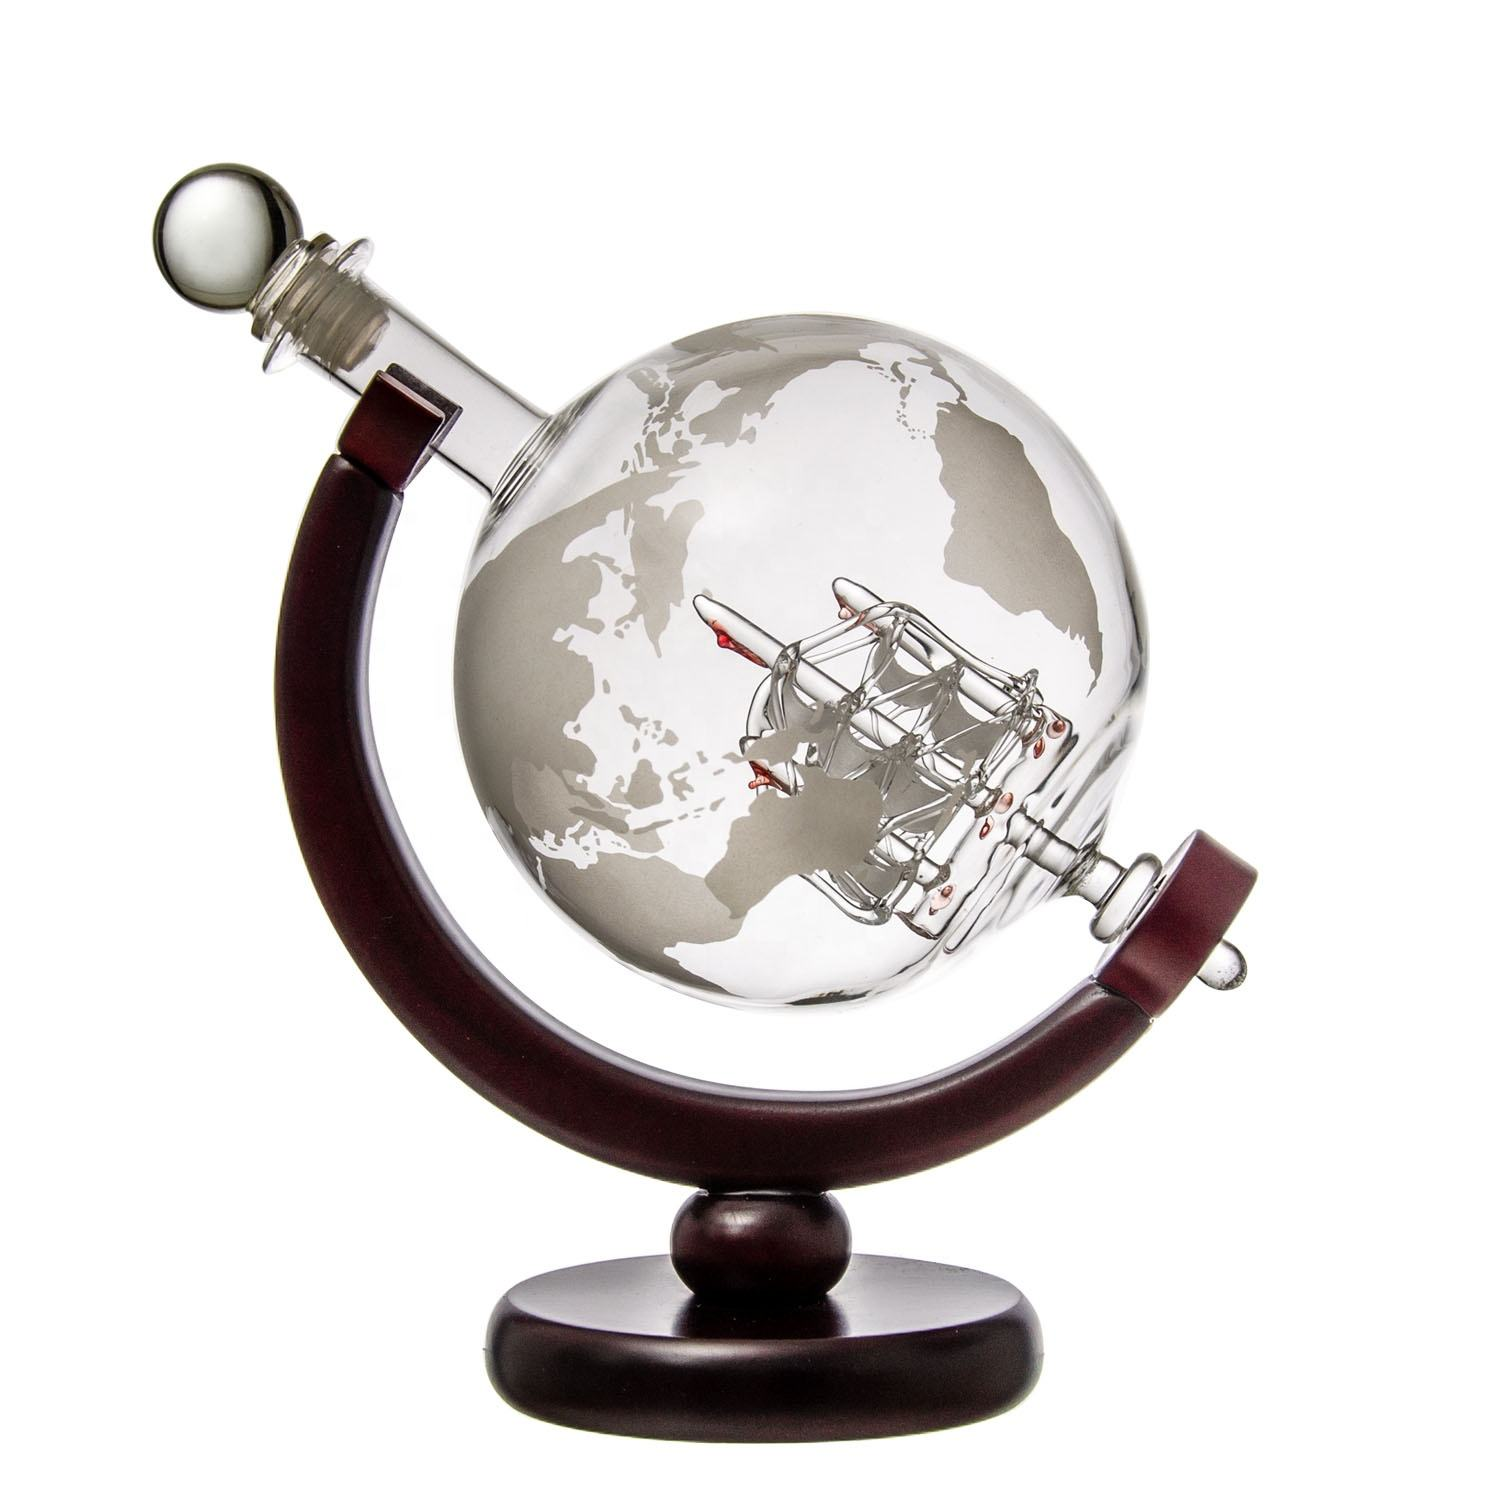 China Supplier Wholesale New Design Unique Shape Globe Glass Decanter Set With Wood Base Wine Decanter